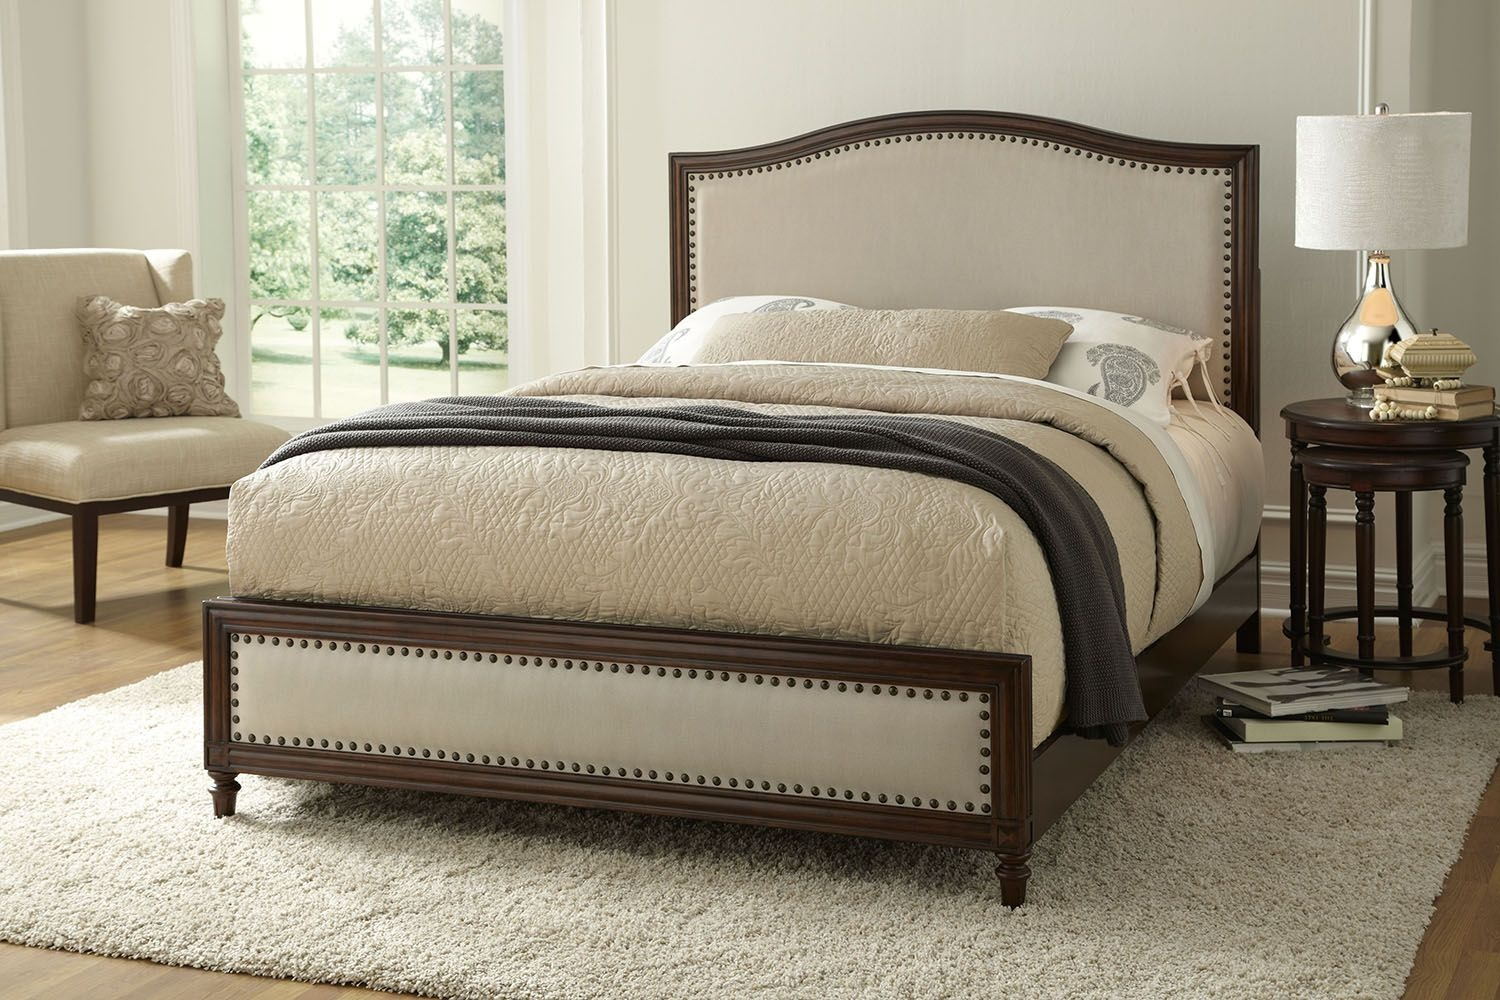 Fashion Bed Group Bedroom Grandover Complete Wood Bed And Bedding